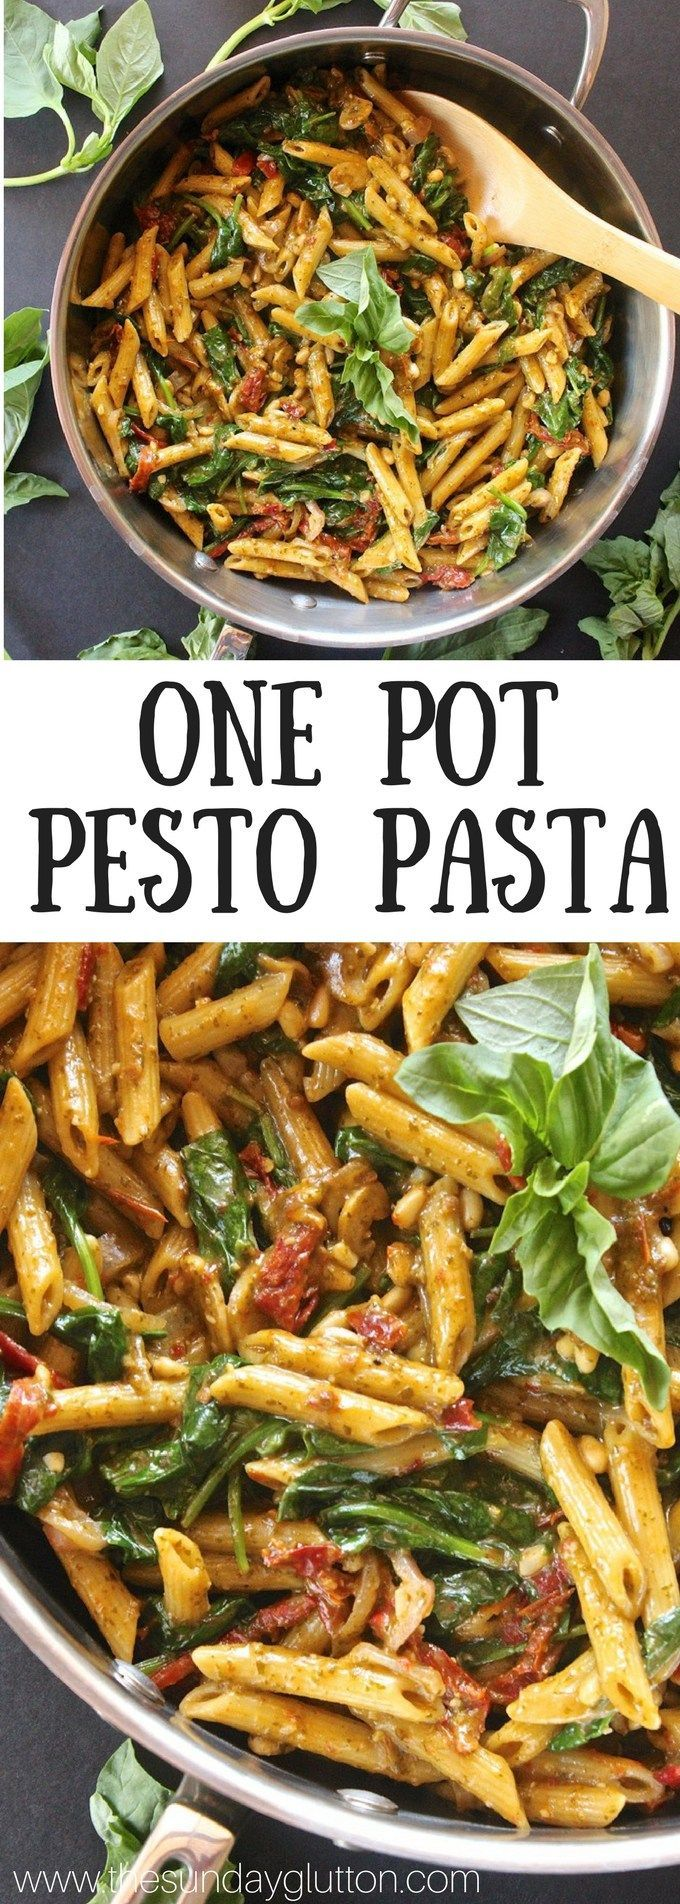 This One Pot Pesto Pasta is packed with flavor from hearty basil, pine nuts and sun-dried tomatoes...and it's ready in under 30 minutes.